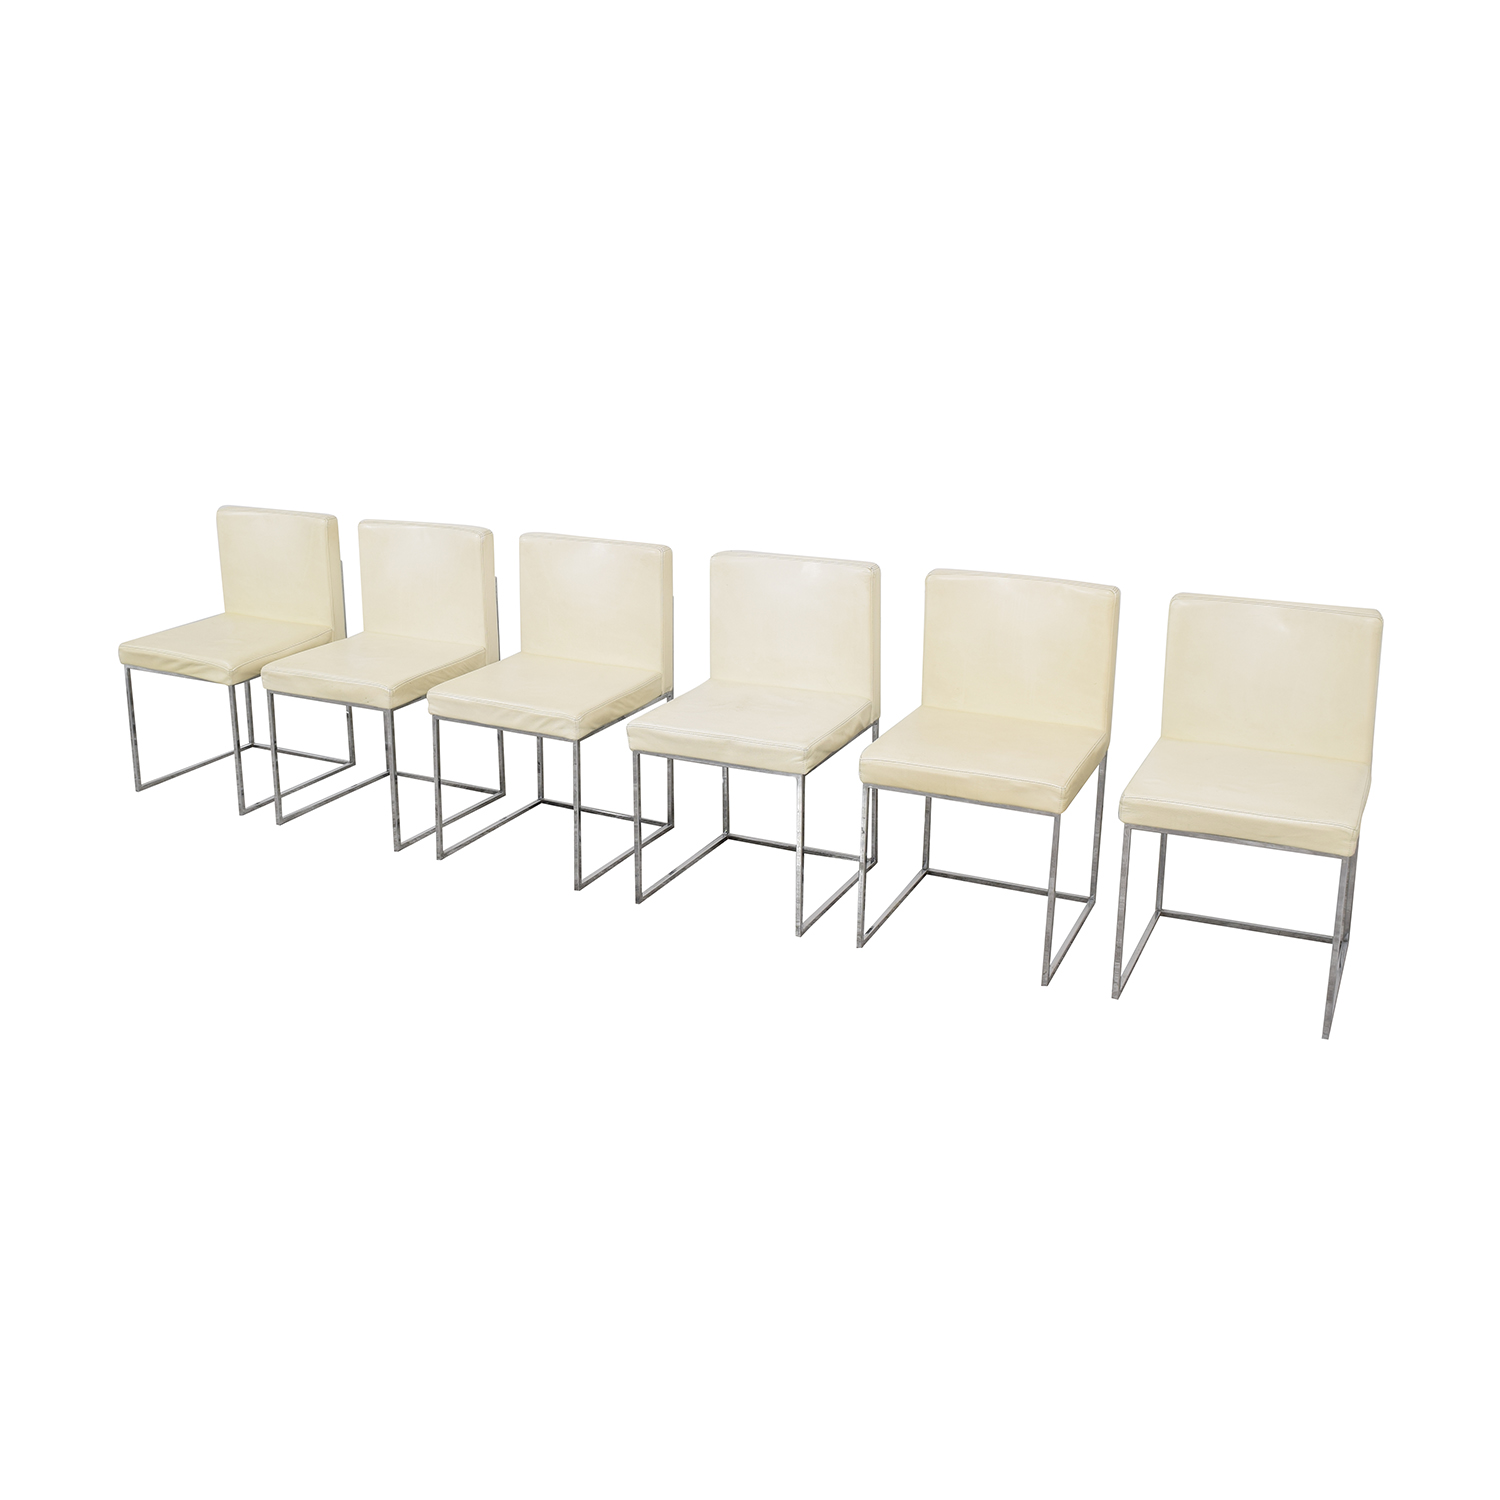 buy Calligaris Even Plus Leather Chairs Calligaris